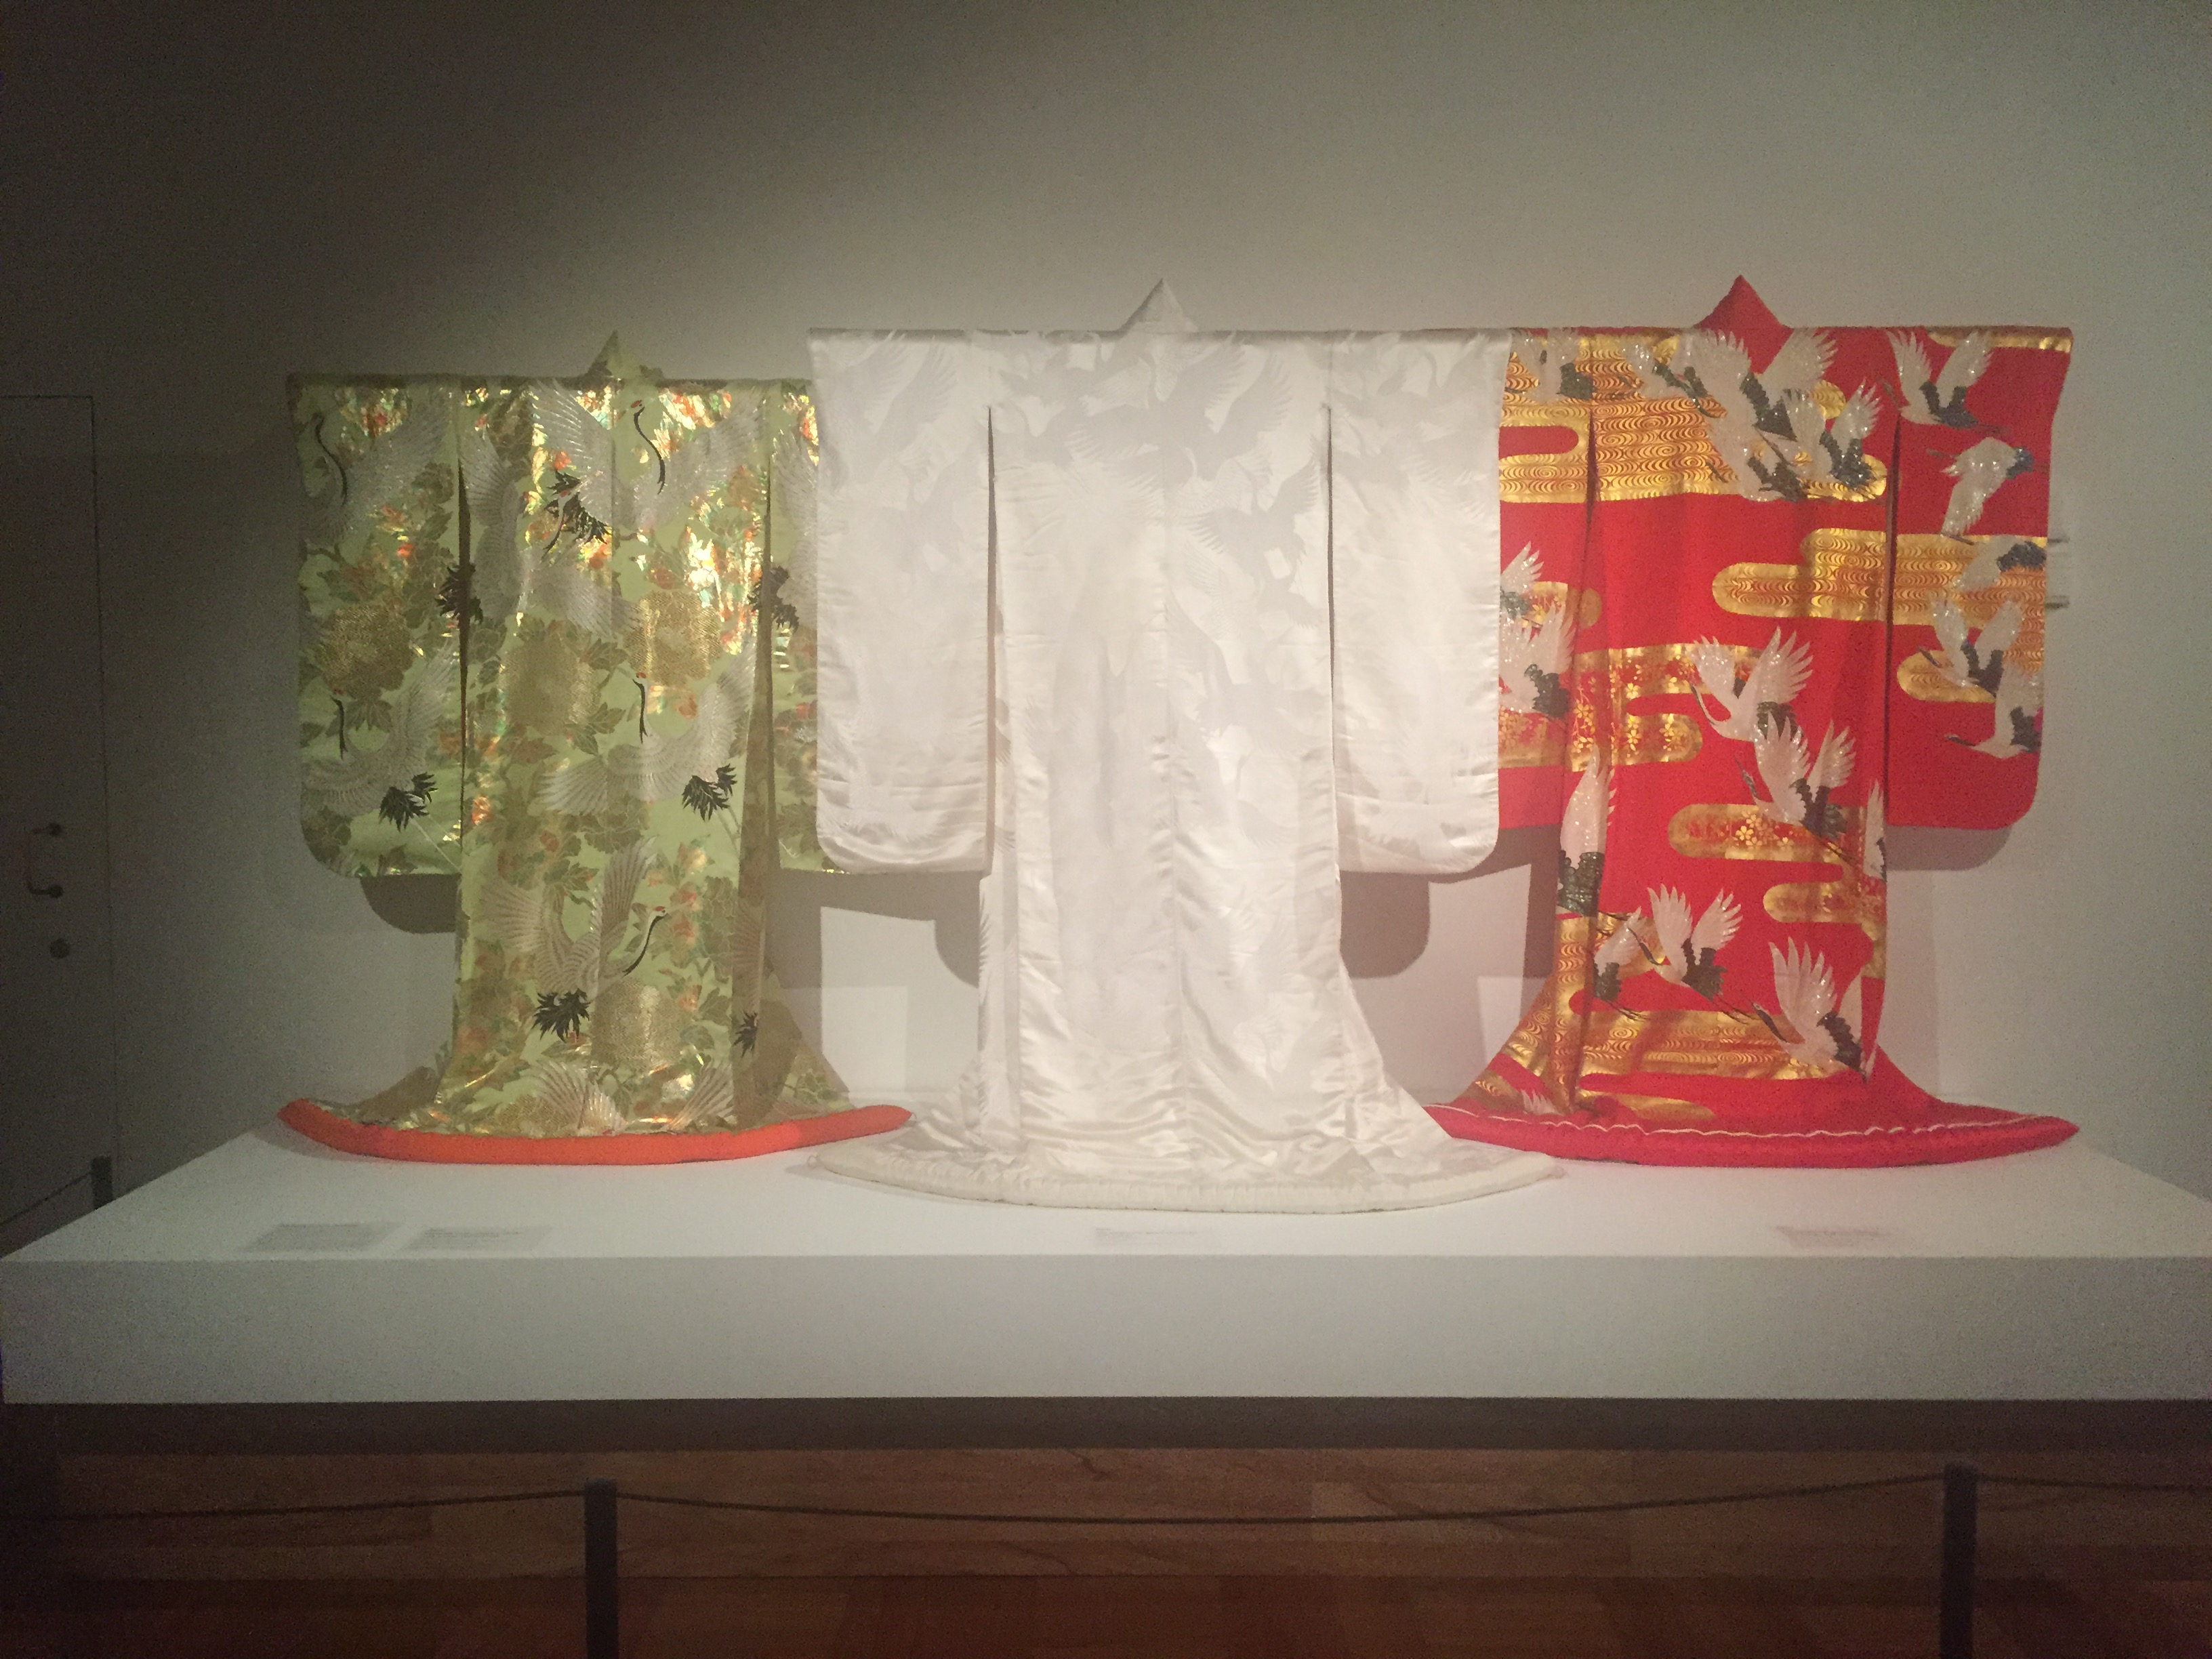 Wedding kimonos on view